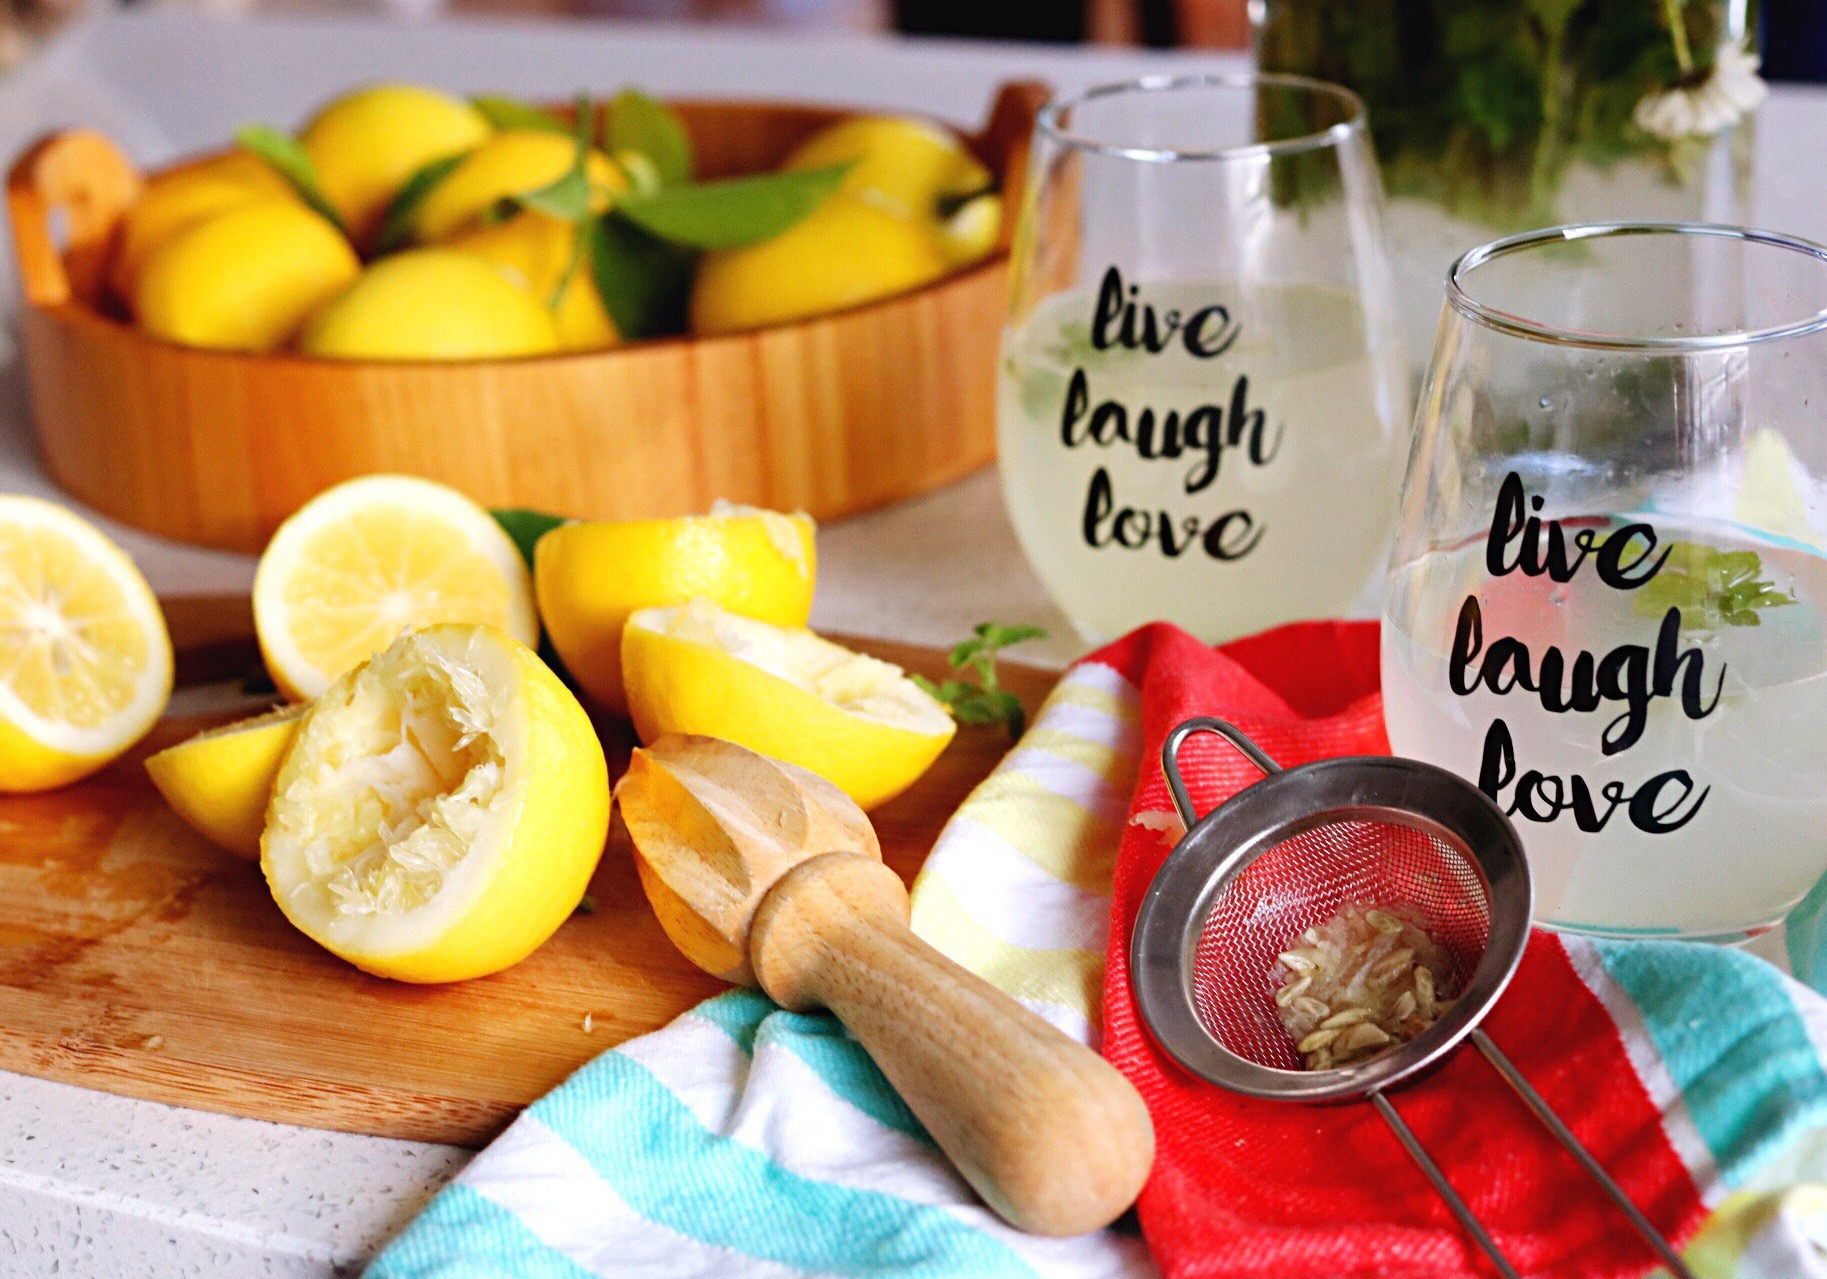 ✔️ Meyer lemonade is the BEST lemonade!   FOUR Meyer Lemons = ONE cup of lemon juice  One cup lemon juice  One cup water  and One table spoon sugar (or as much as you want)  Combine ingredients, add ice, drink, and be refreshed!